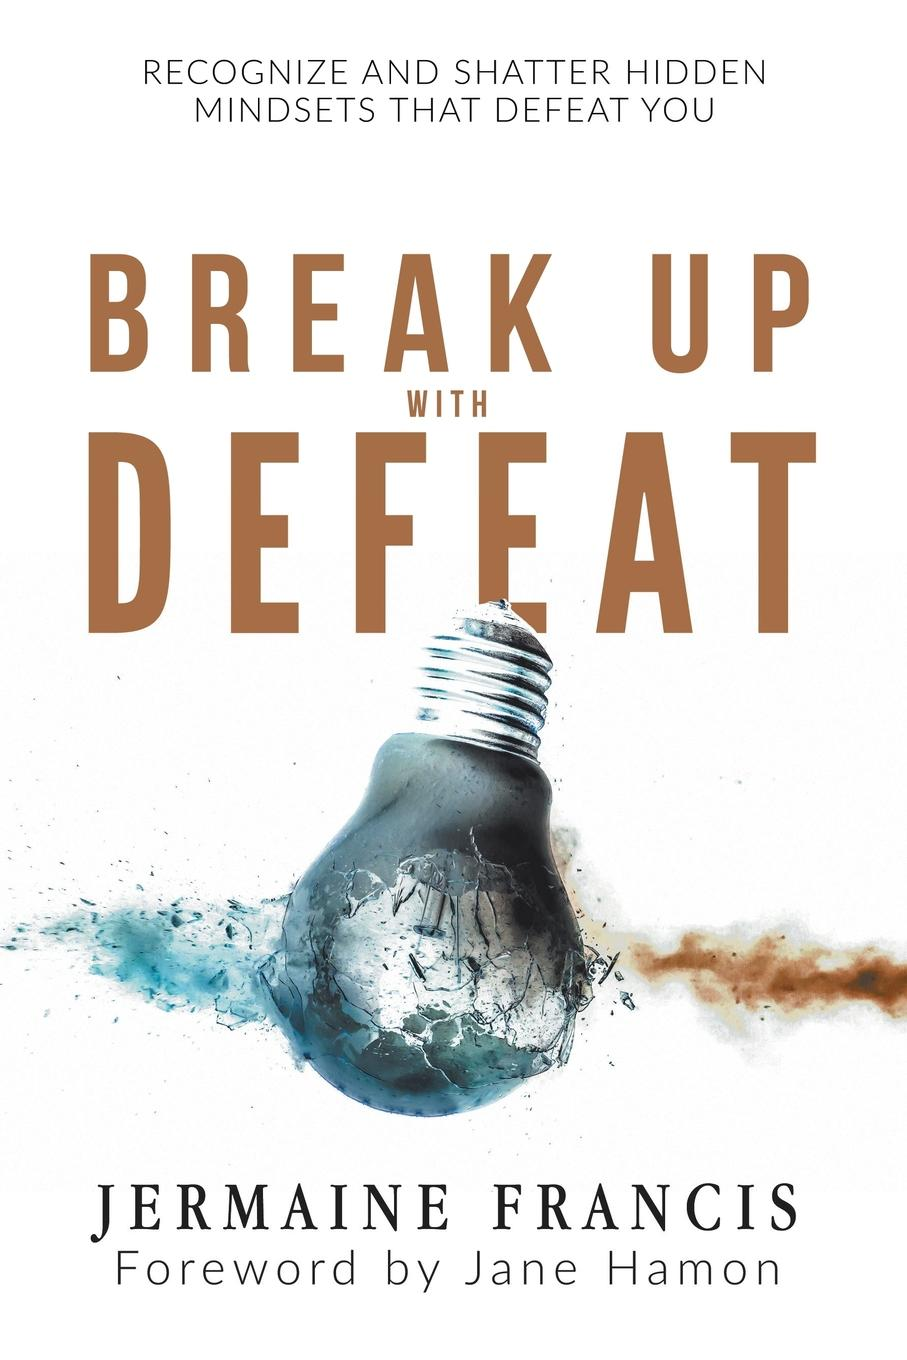 Jermaine Francis Break Up with Defeat. Recognize and Shatter Hidden Mindsets That Defeat You